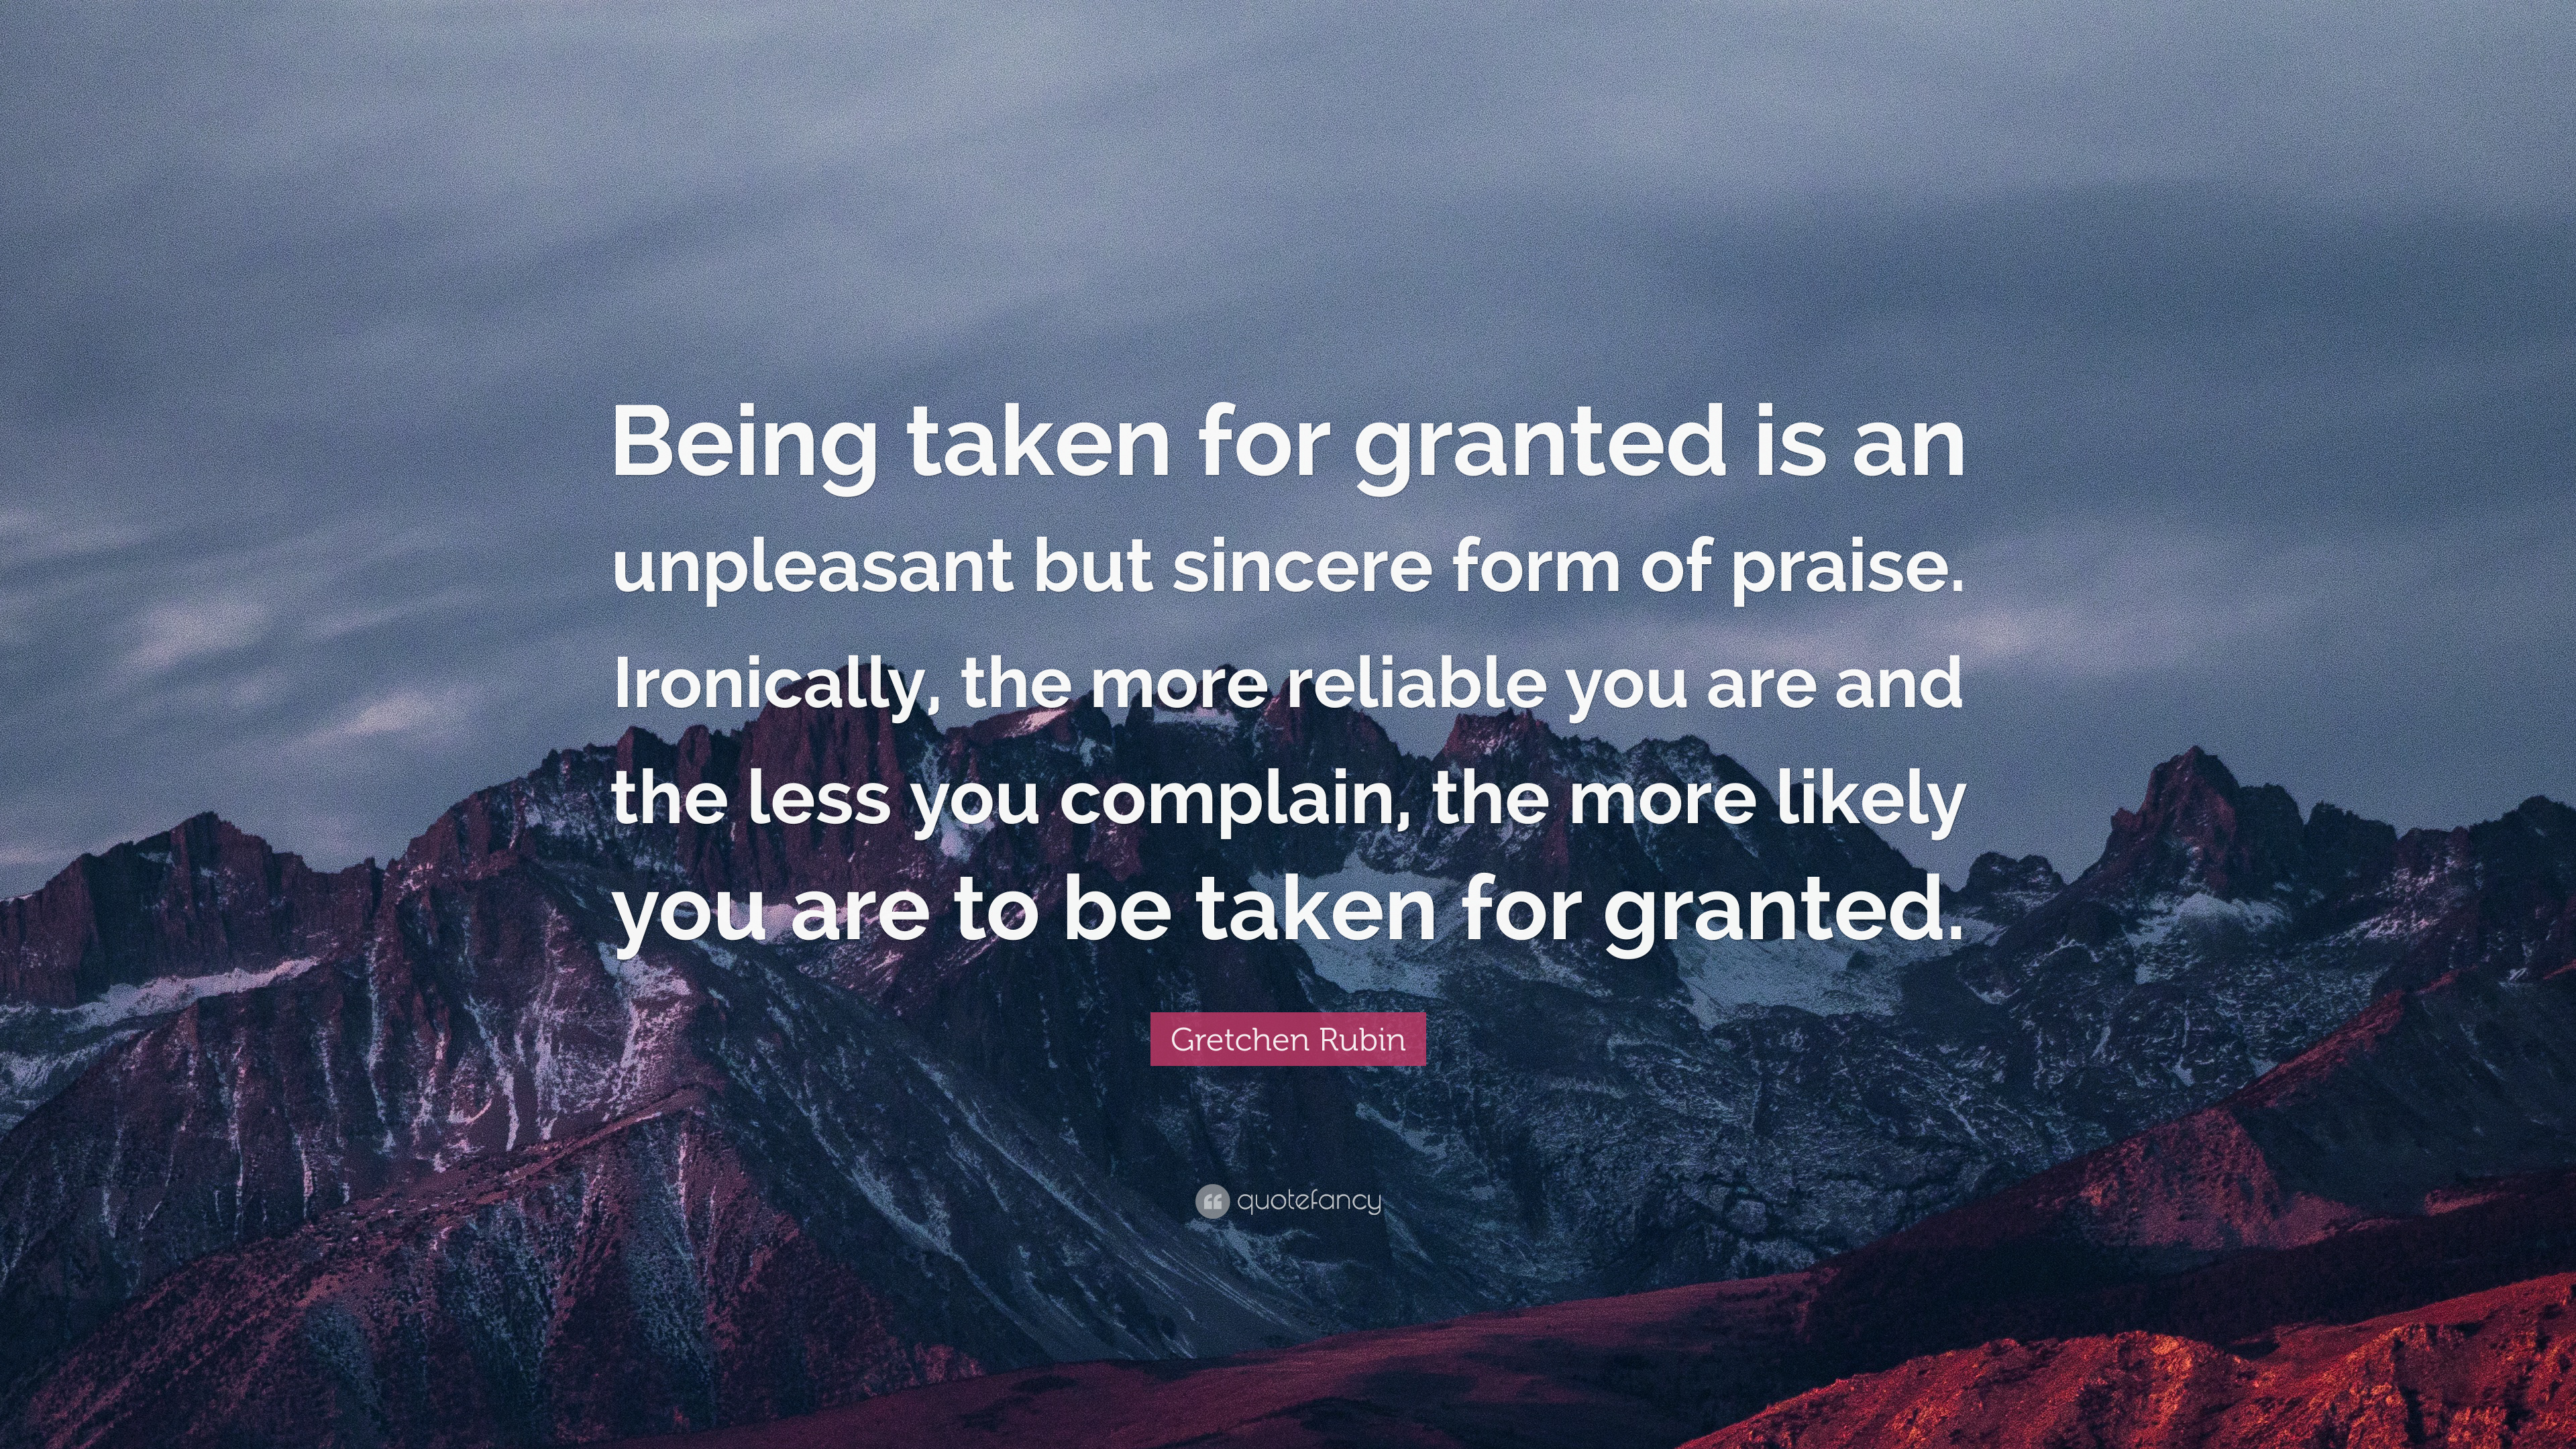 Granted Quotes Wallpaper Gretchen Rubin Quote Being Taken For Granted Is An